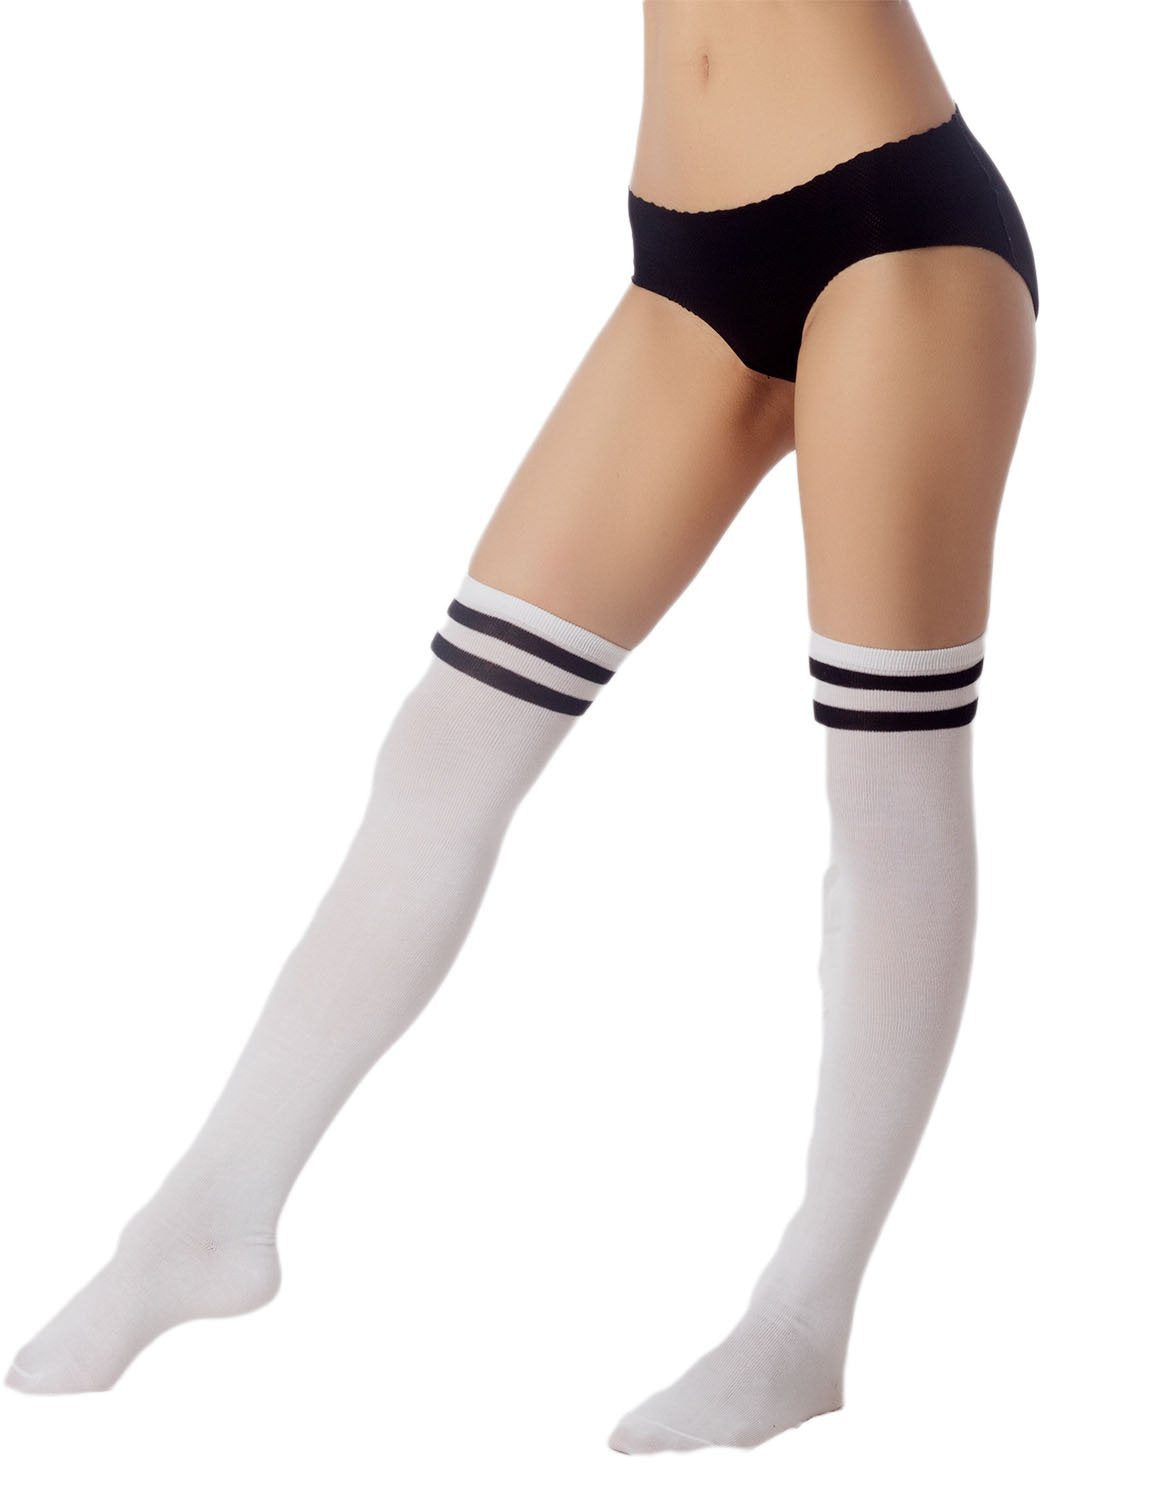 Women's Navy Stripes Sports Football Style Cute Hold-Up Thigh High Socks, Size: One Size, White & Mu